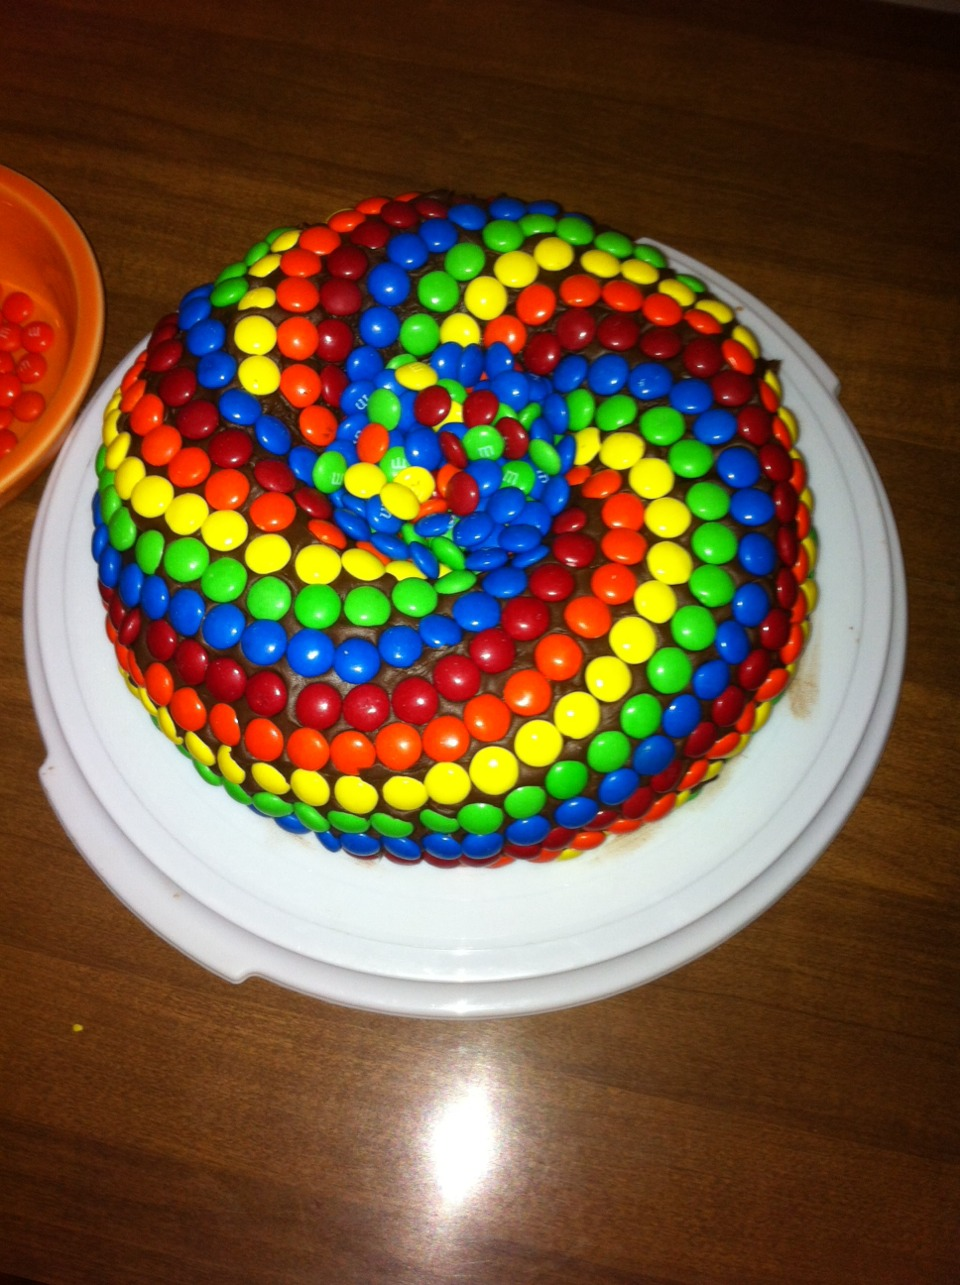 Lastly, decorate your cake like you want to! Another optional step is to fill the center of your cake with your left over M&M's!